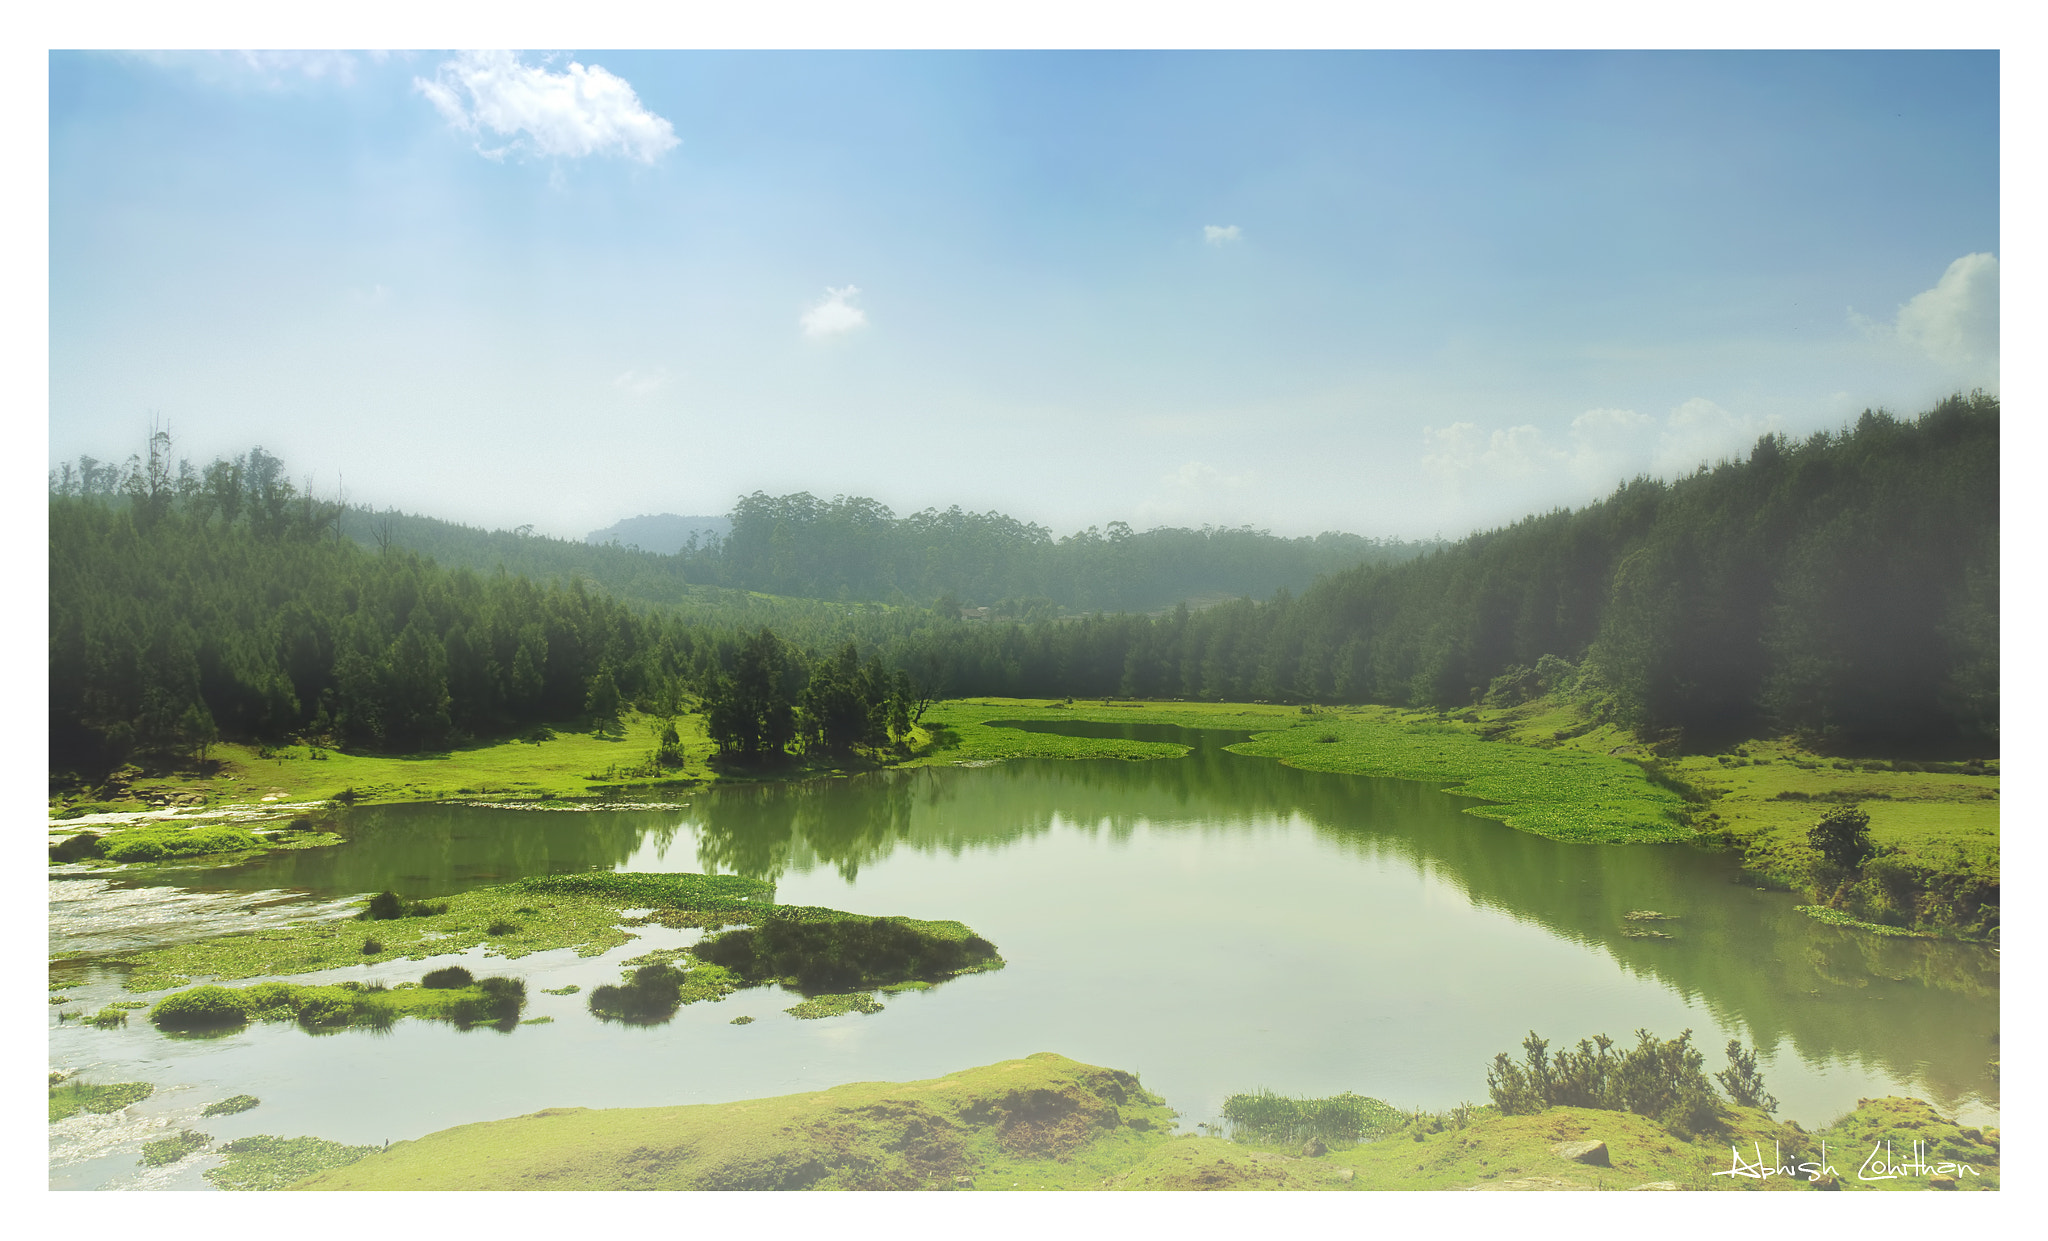 Photograph The Country Side by Abhish Lohithan on 500px